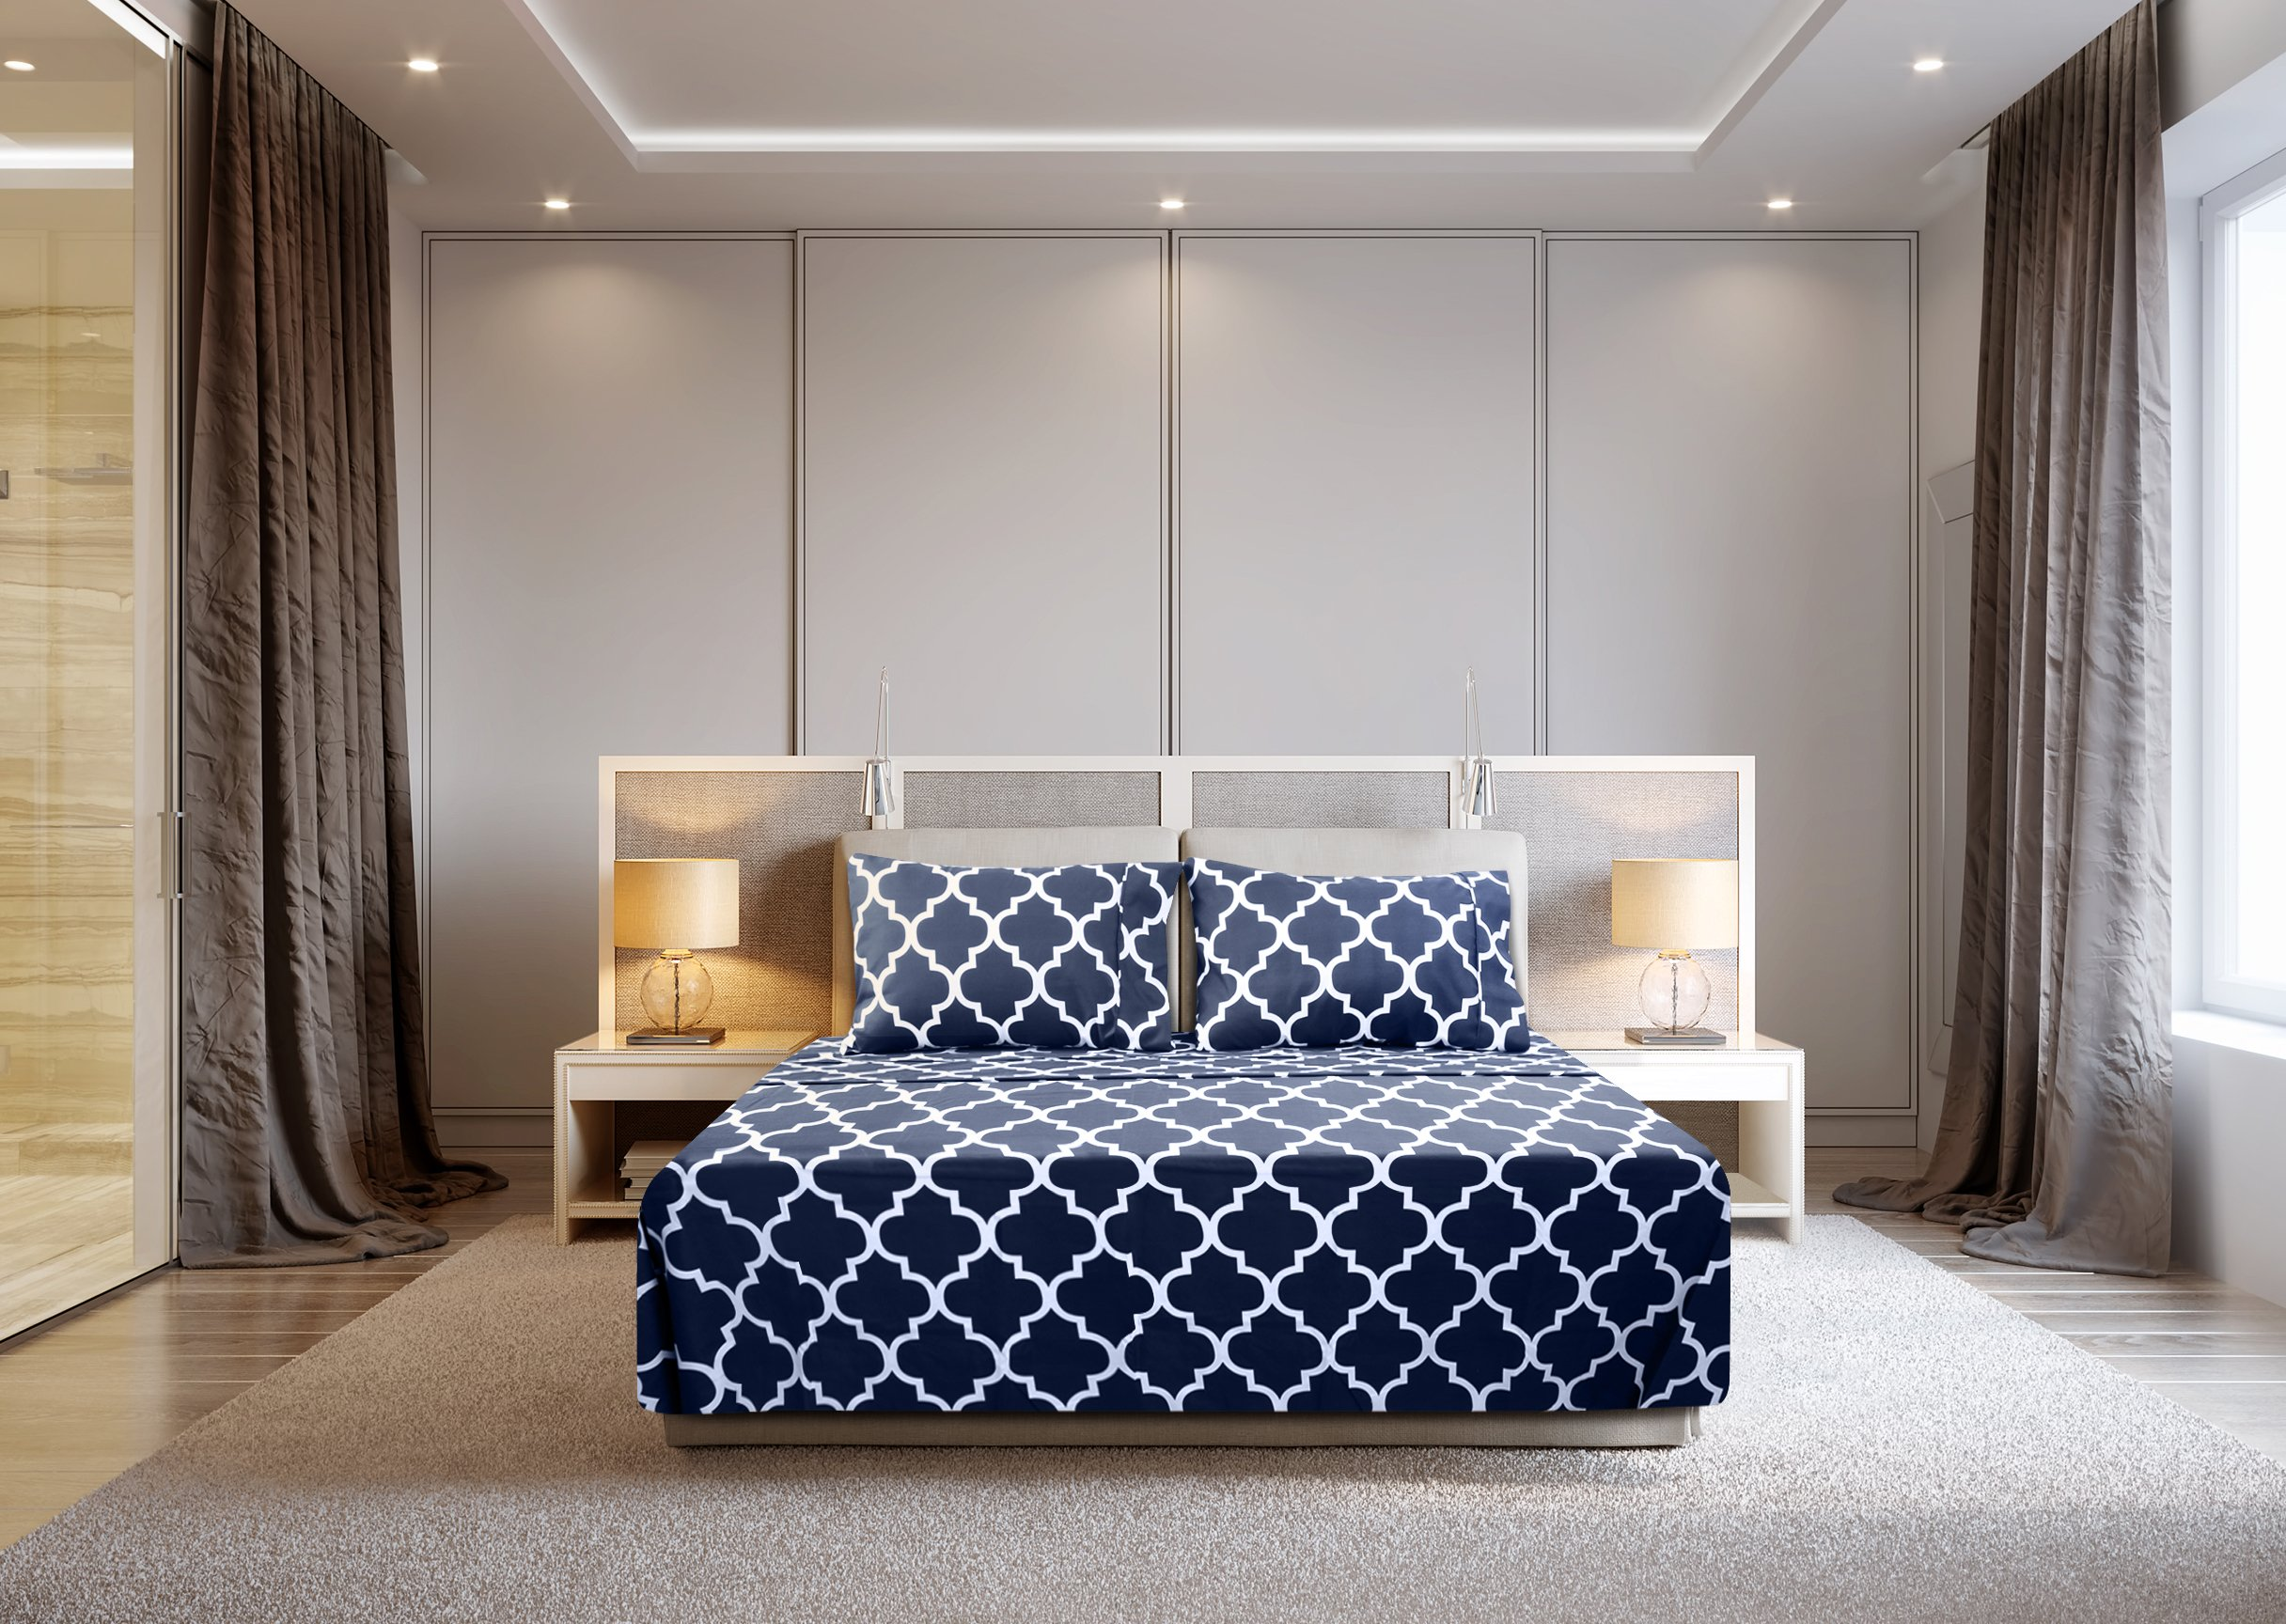 Utopia Bedding 3 Piece Bed Sheets Set (Twin, Navy) - 1 Flat Sheet 1 Fitted Sheet and 1 Pillow Case - Hotel Quality Brushed Velvety Microfiber - Luxurious & Extremely Durable by Utopia Bedding (Image #2)